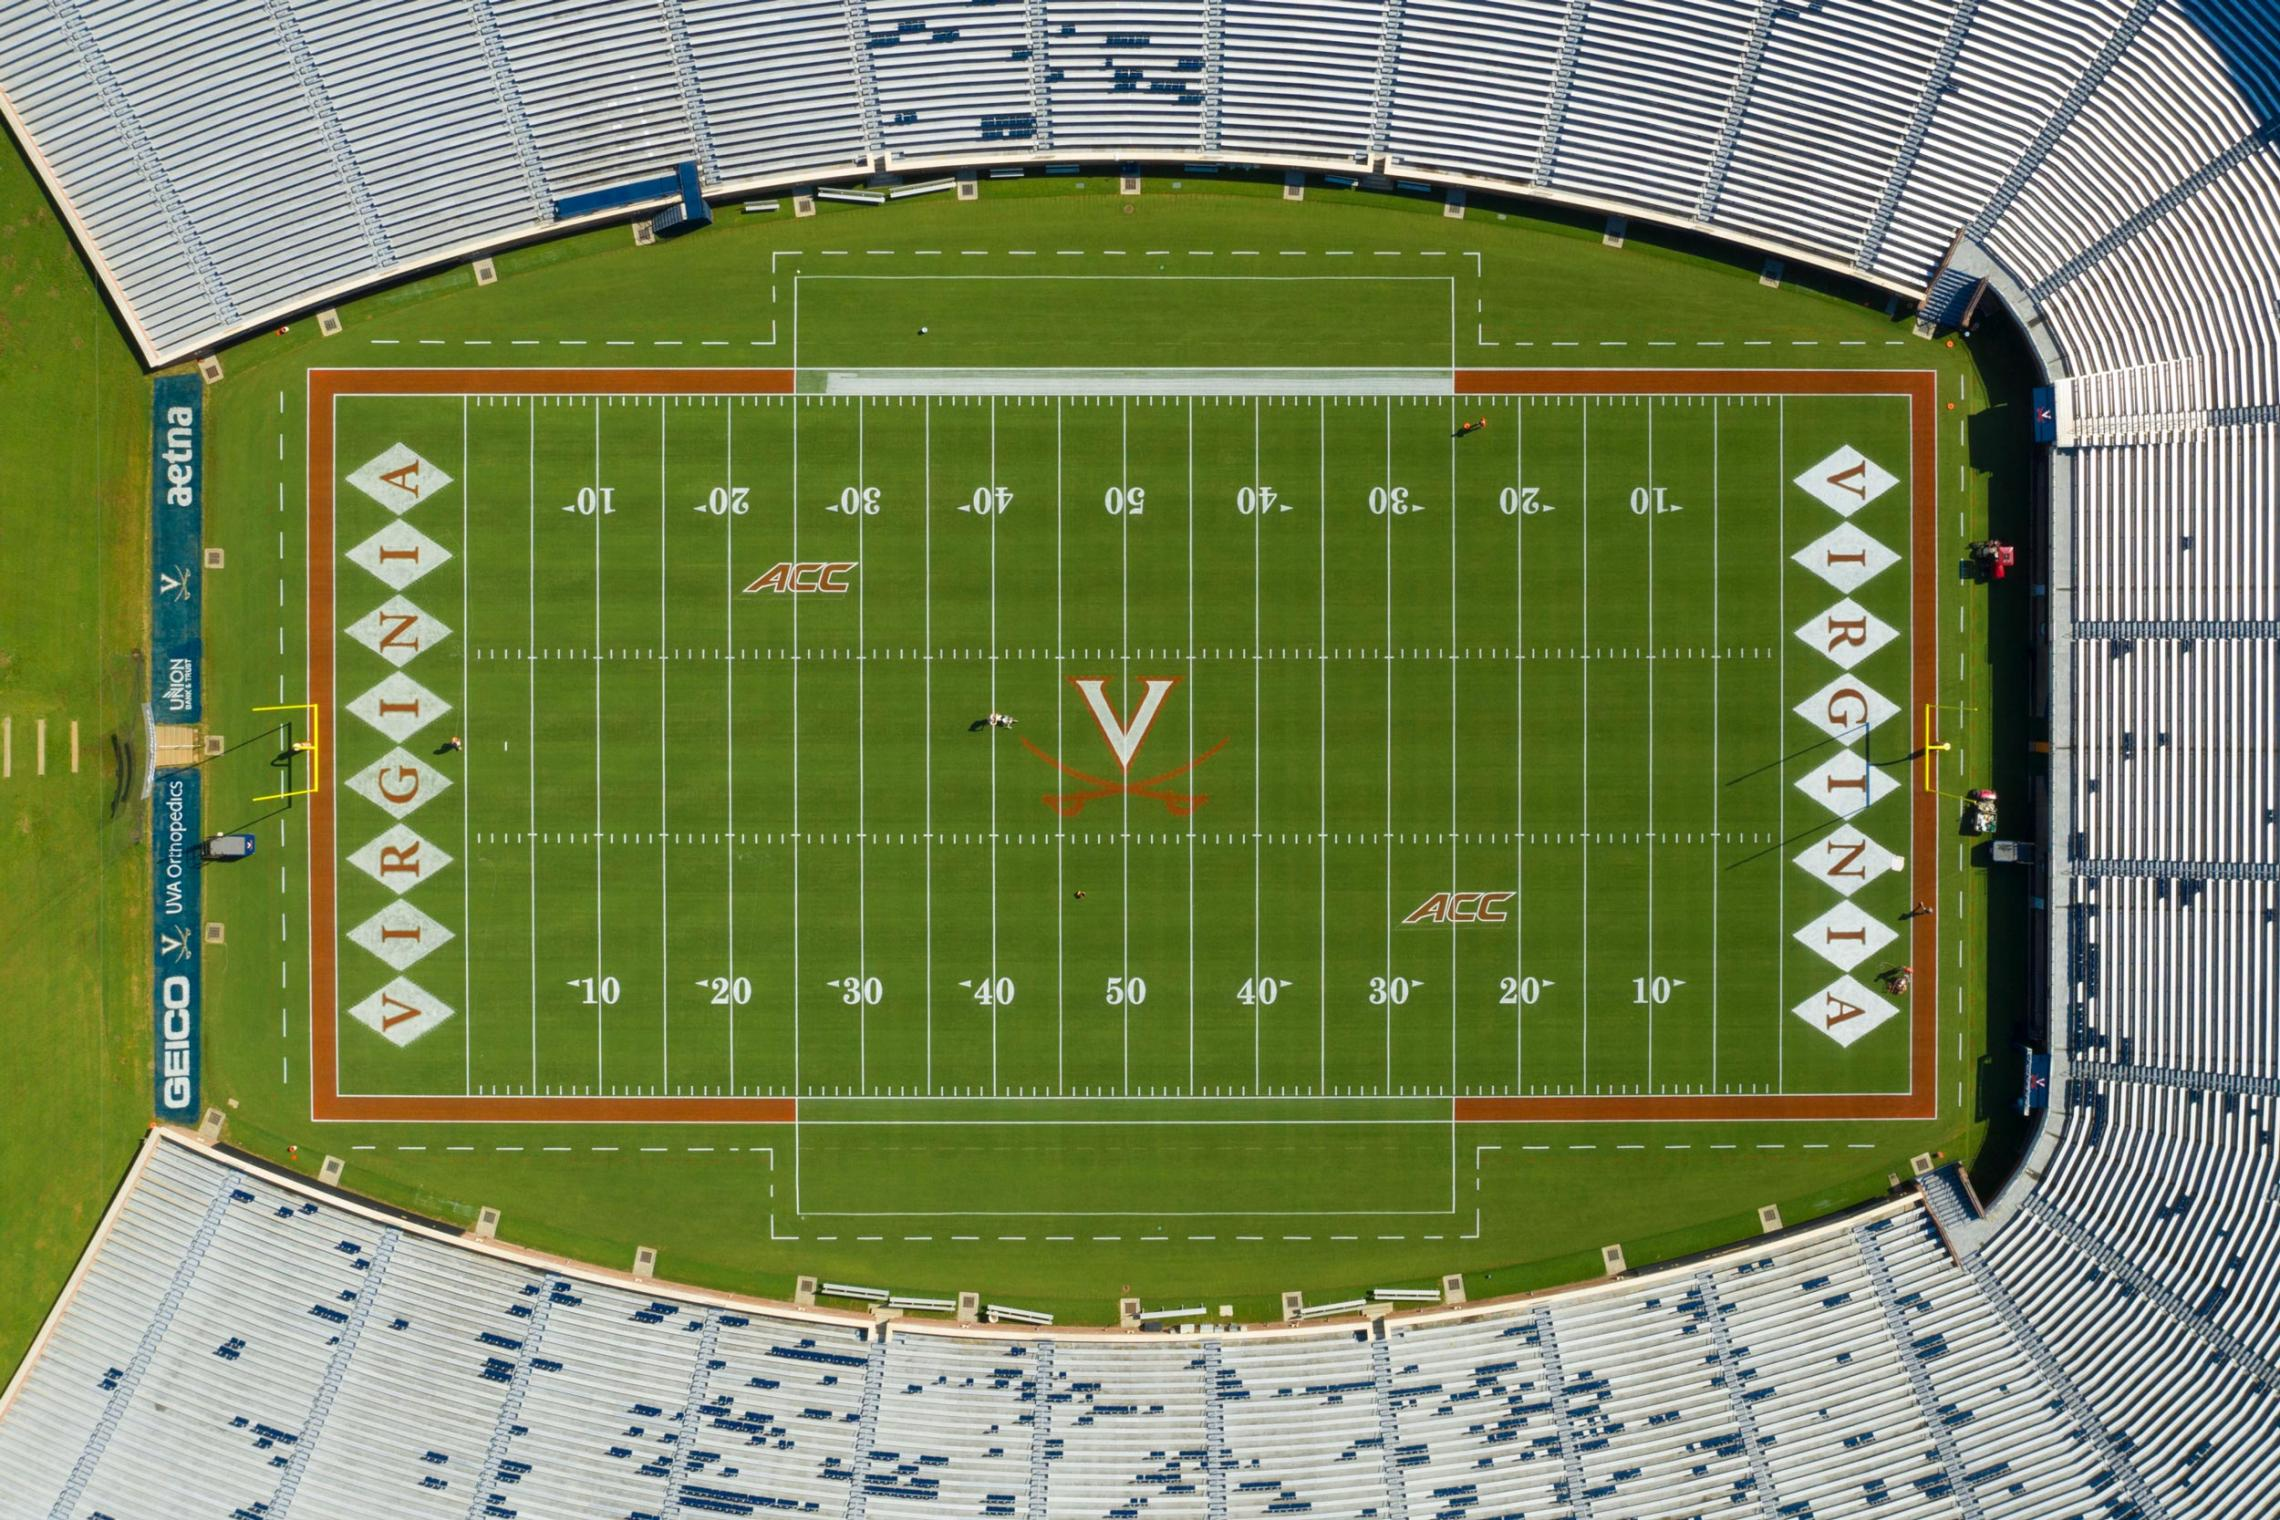 Uva Rolls Out New Measures To Enhance Fans Game Day